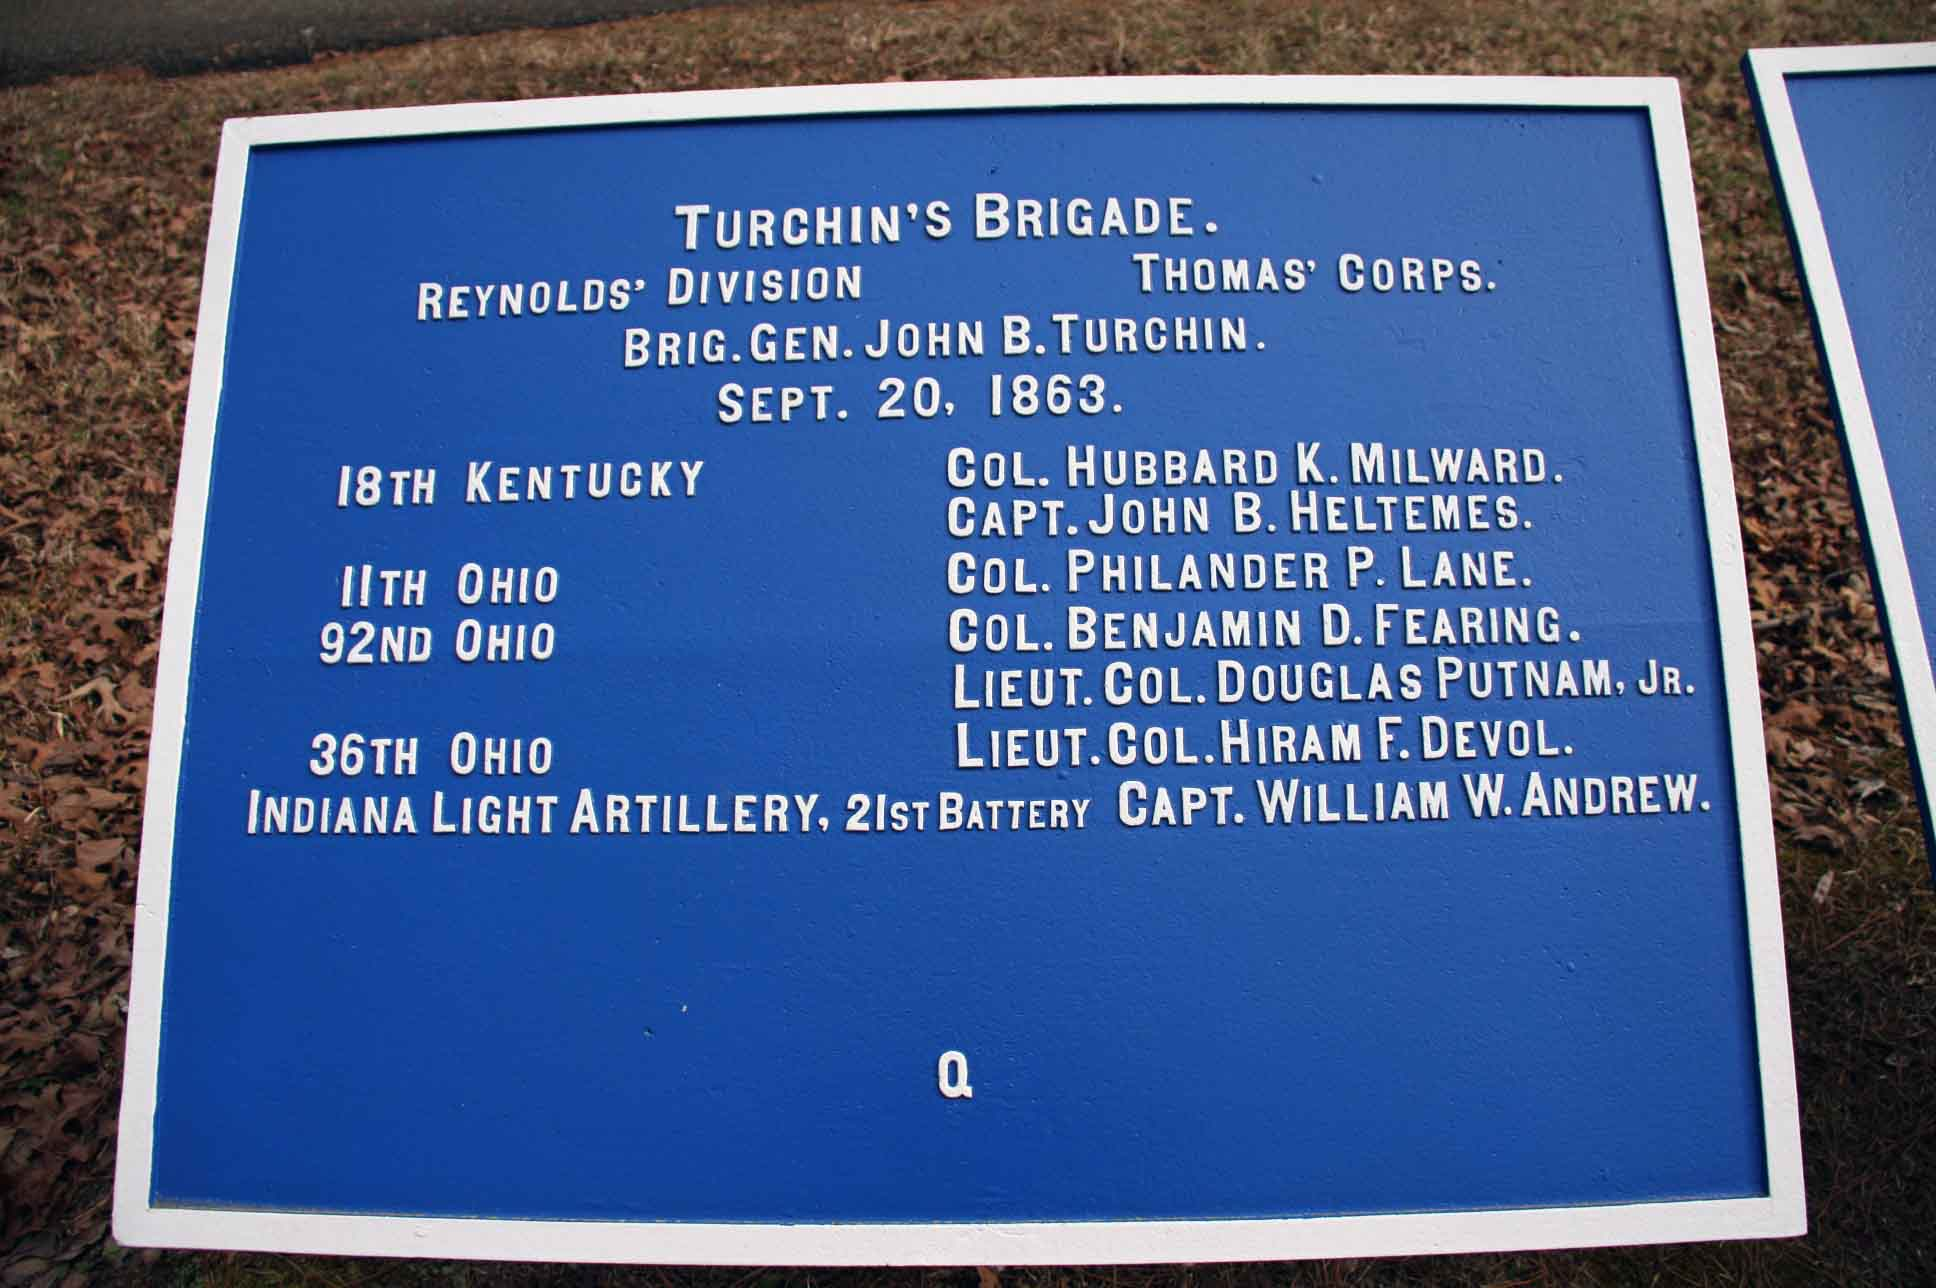 Turchin's Brigade Plaque, click photo to enlarge.